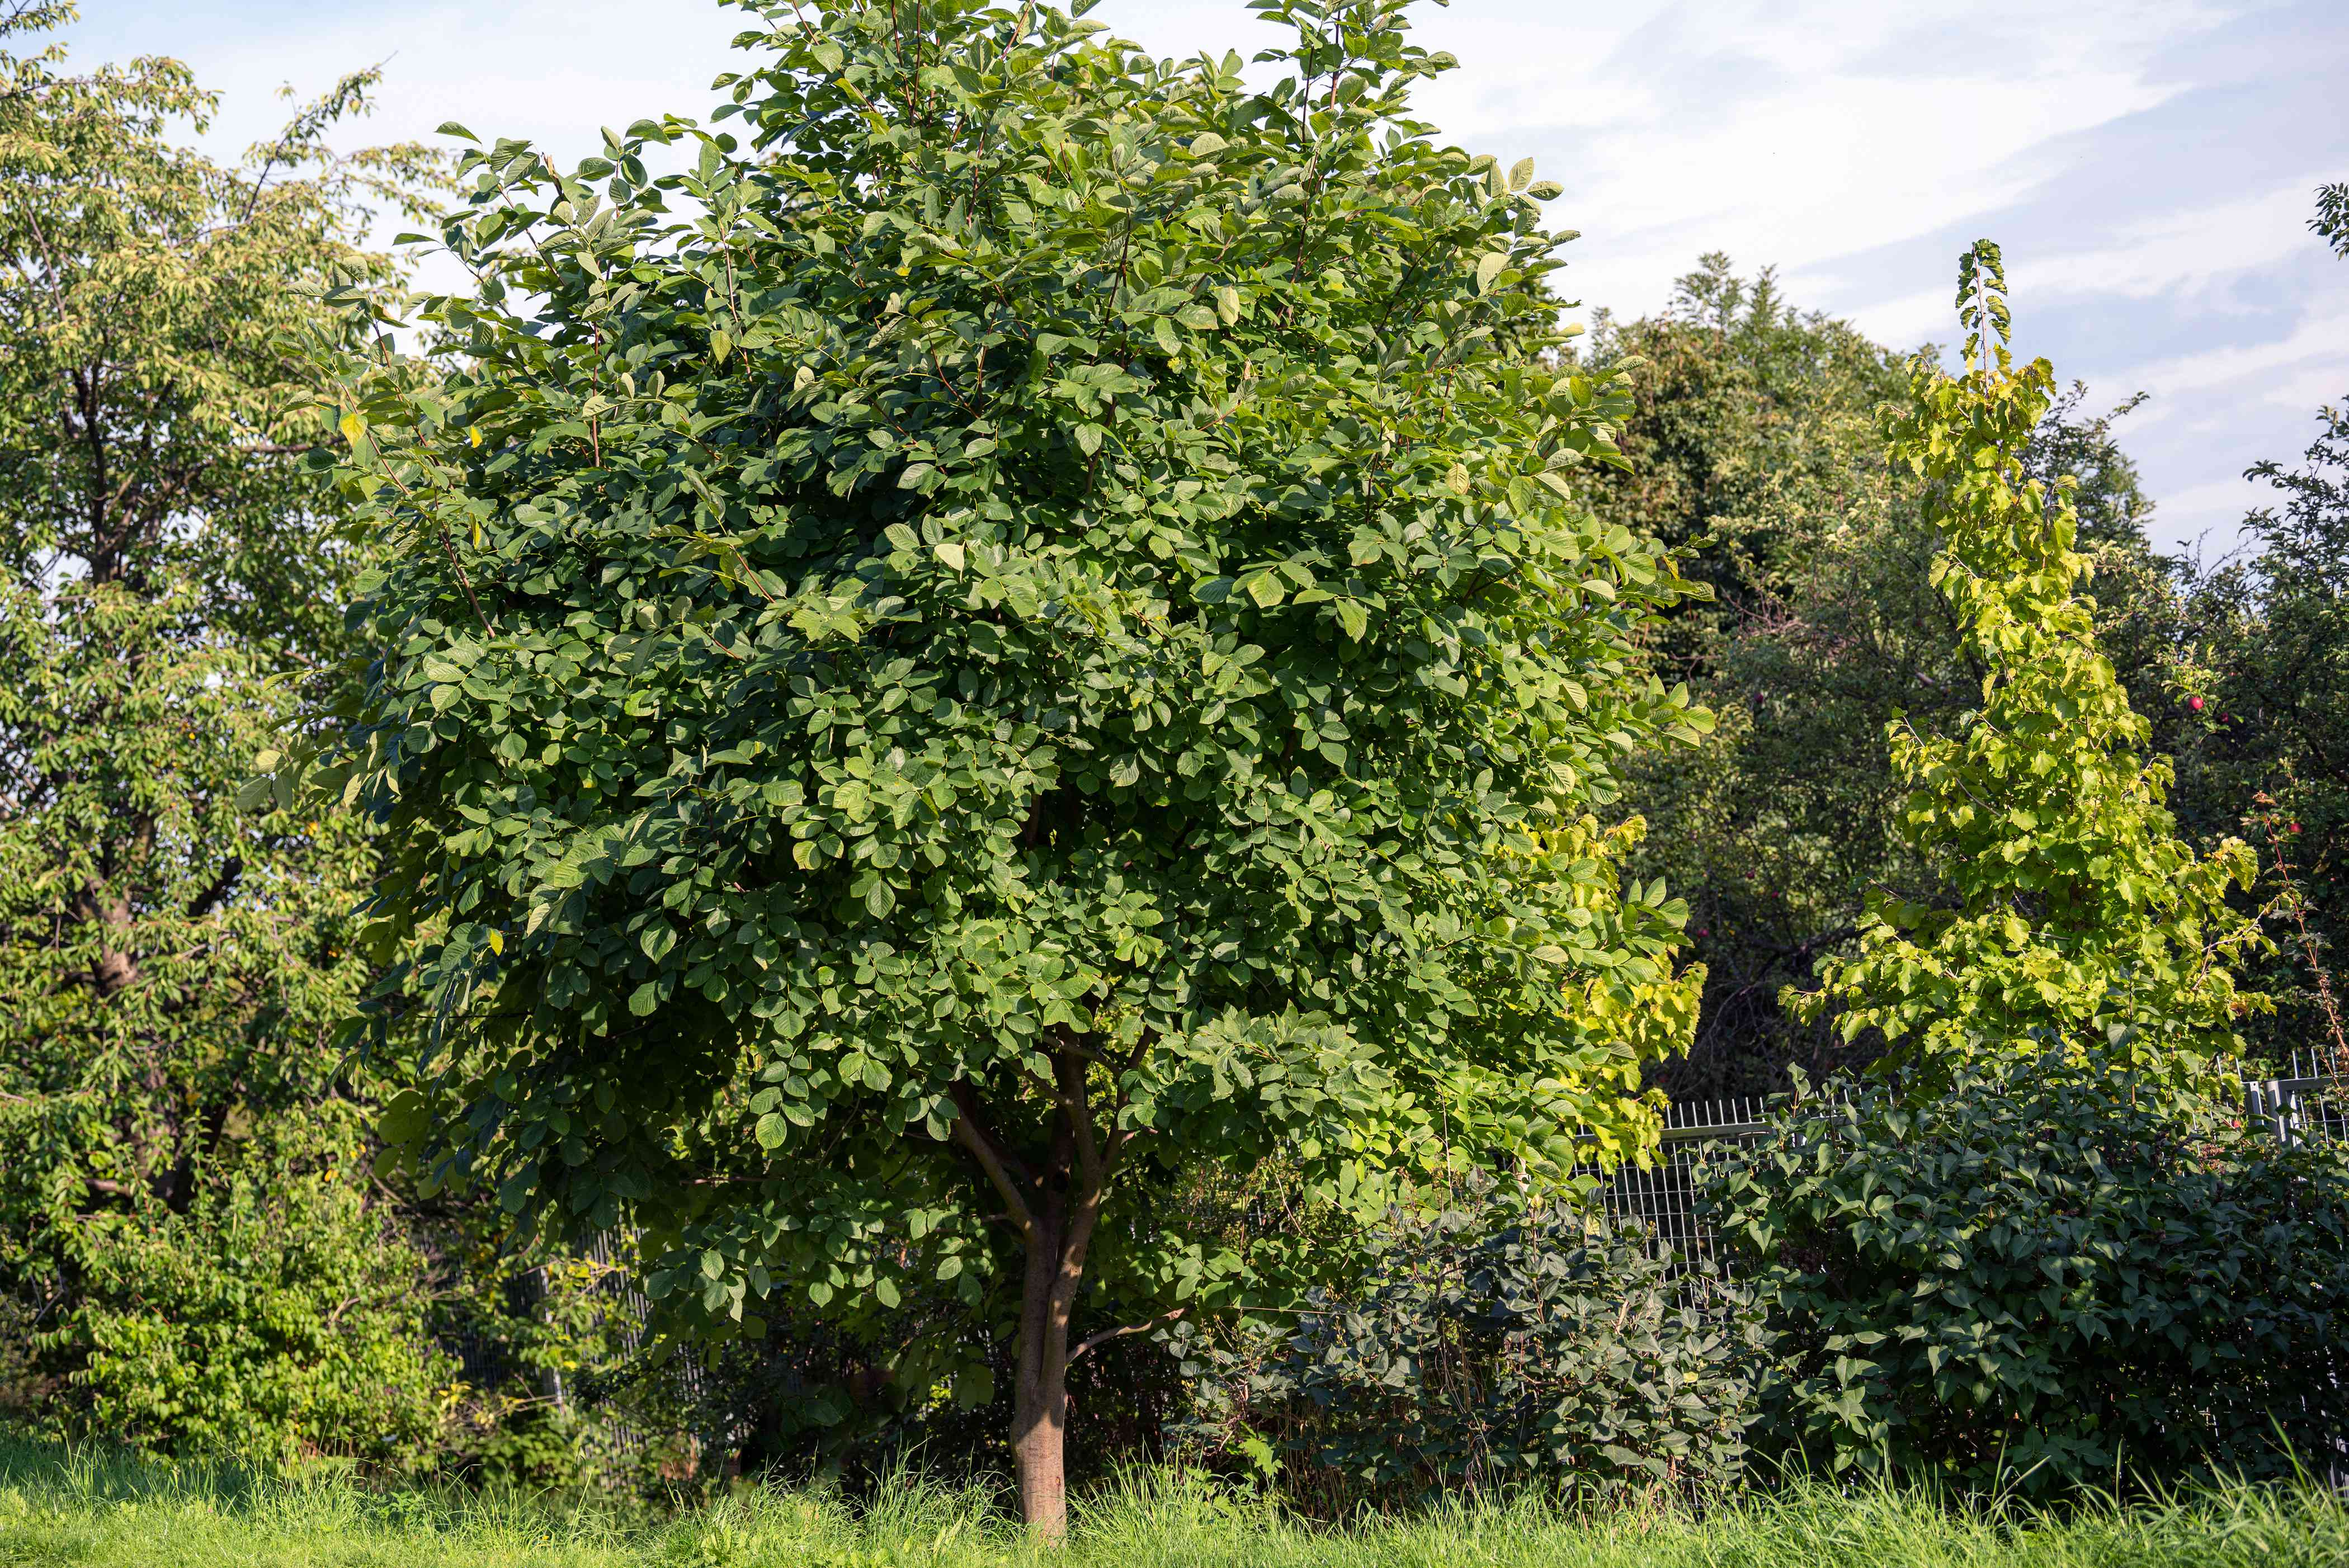 Yellowwood tree with full of branches with green leaves in front of wooded area